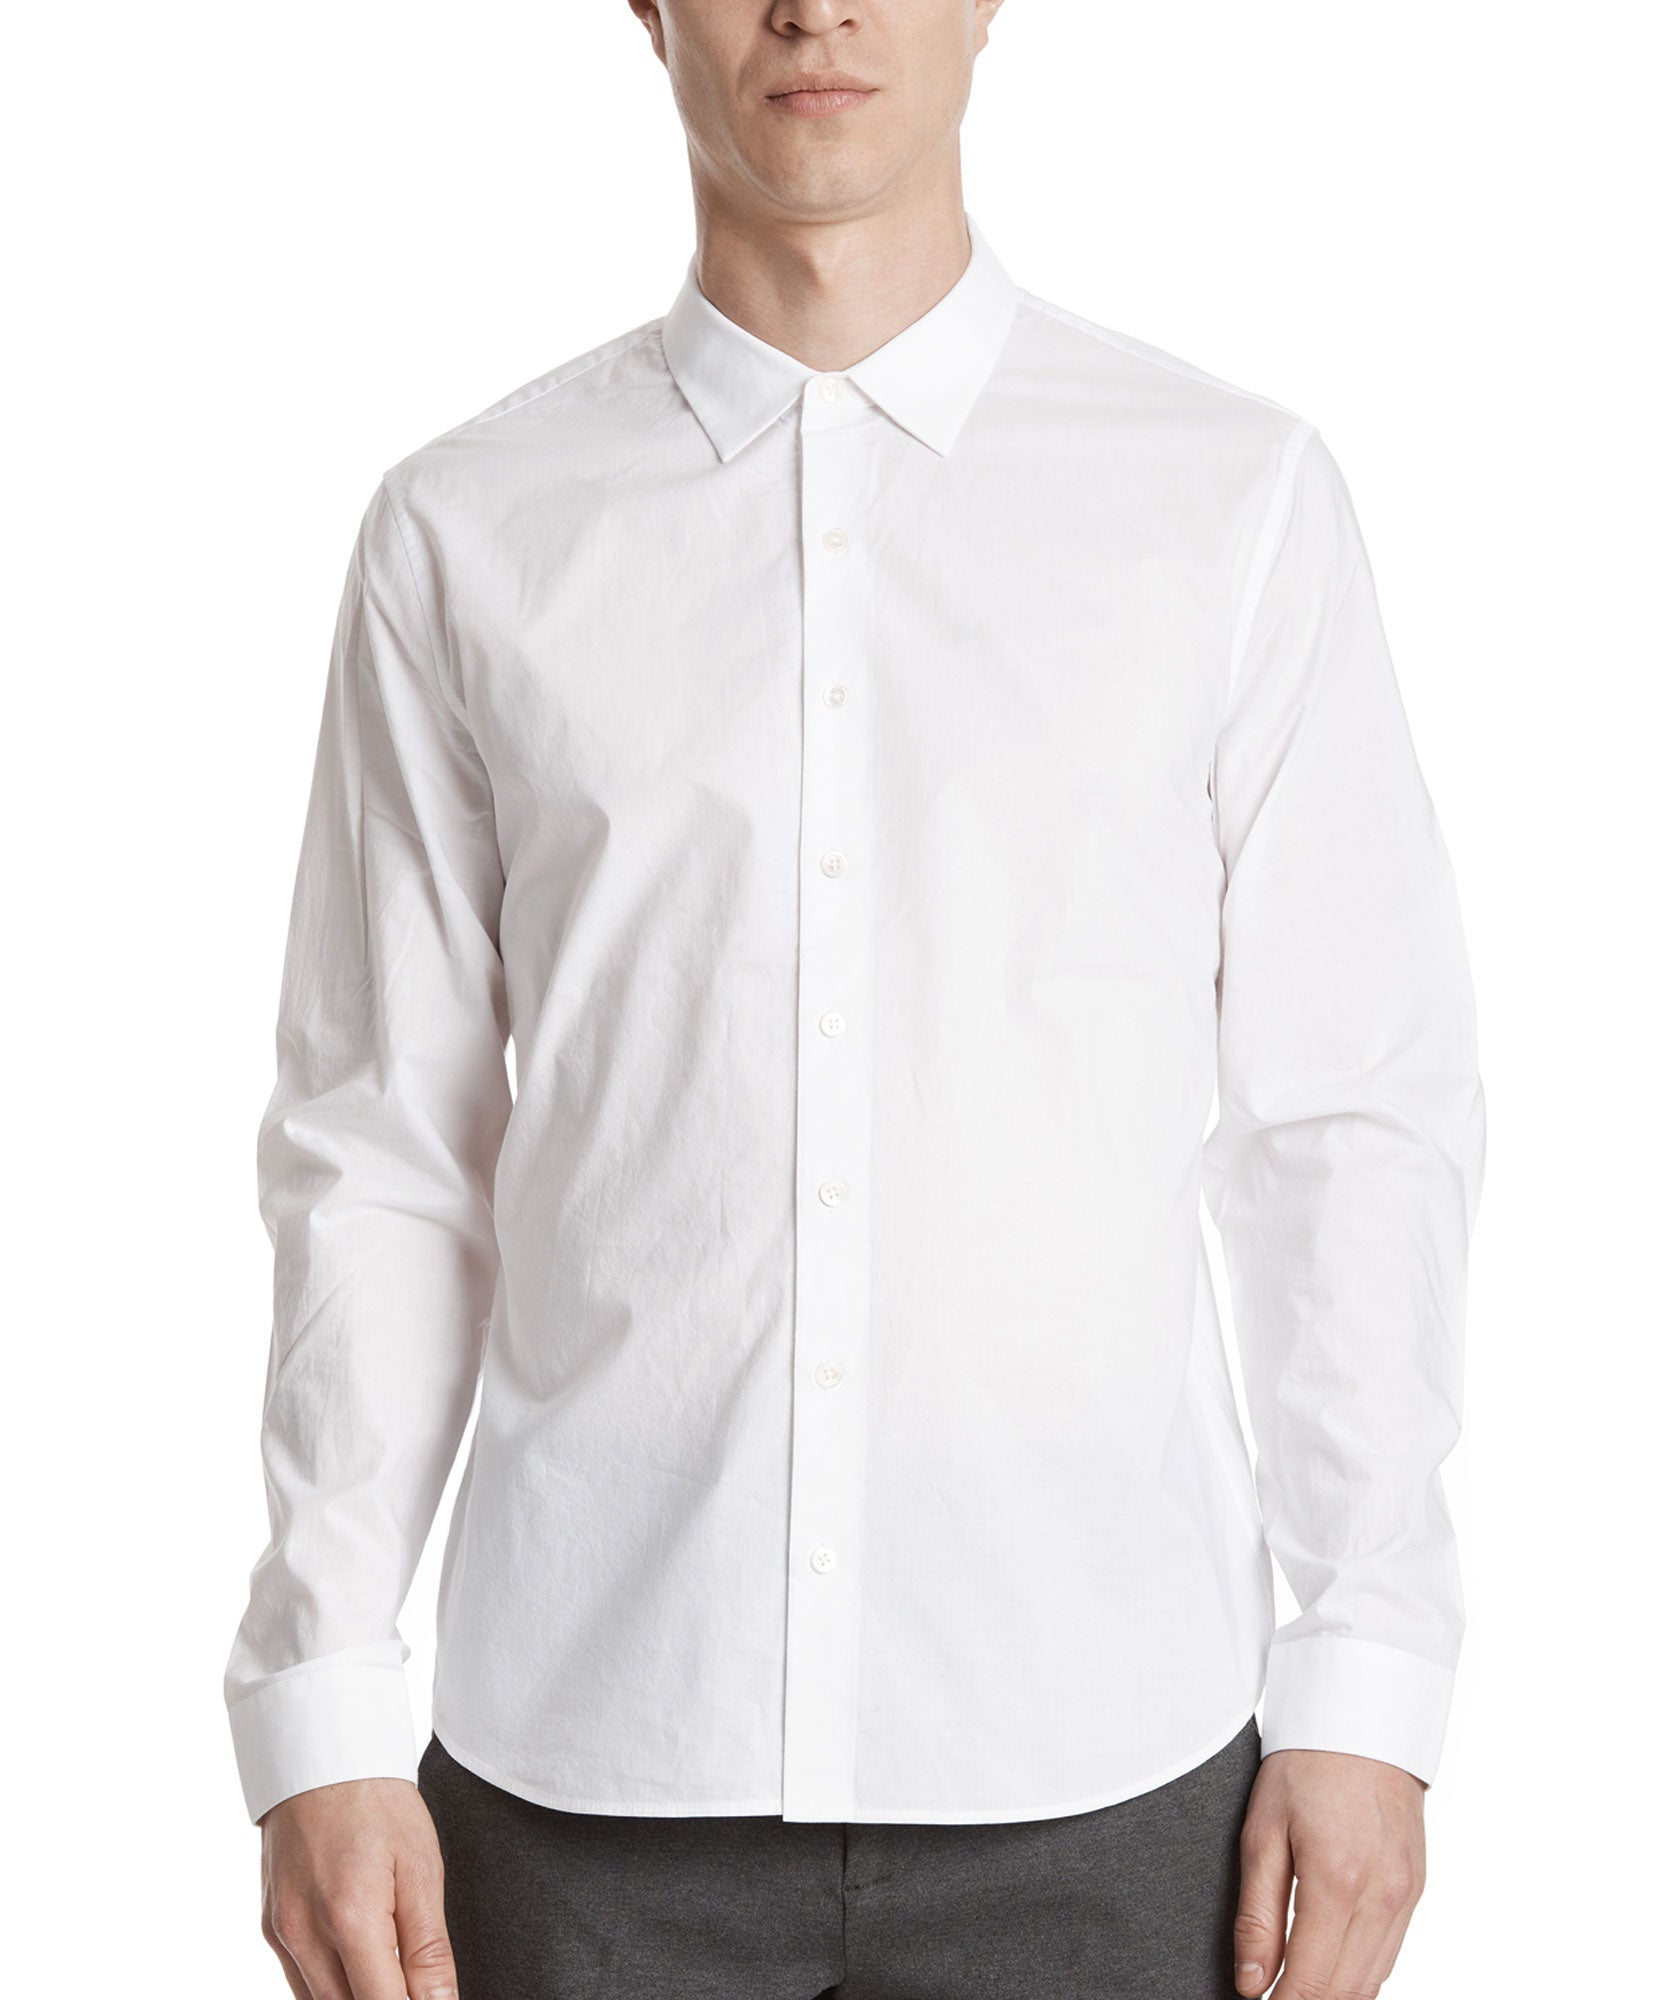 White Cotton Poplin Classic Dress Shirt - Men's Cotton Long Sleeve Shirt by ATM Anthony Thomas Melillo